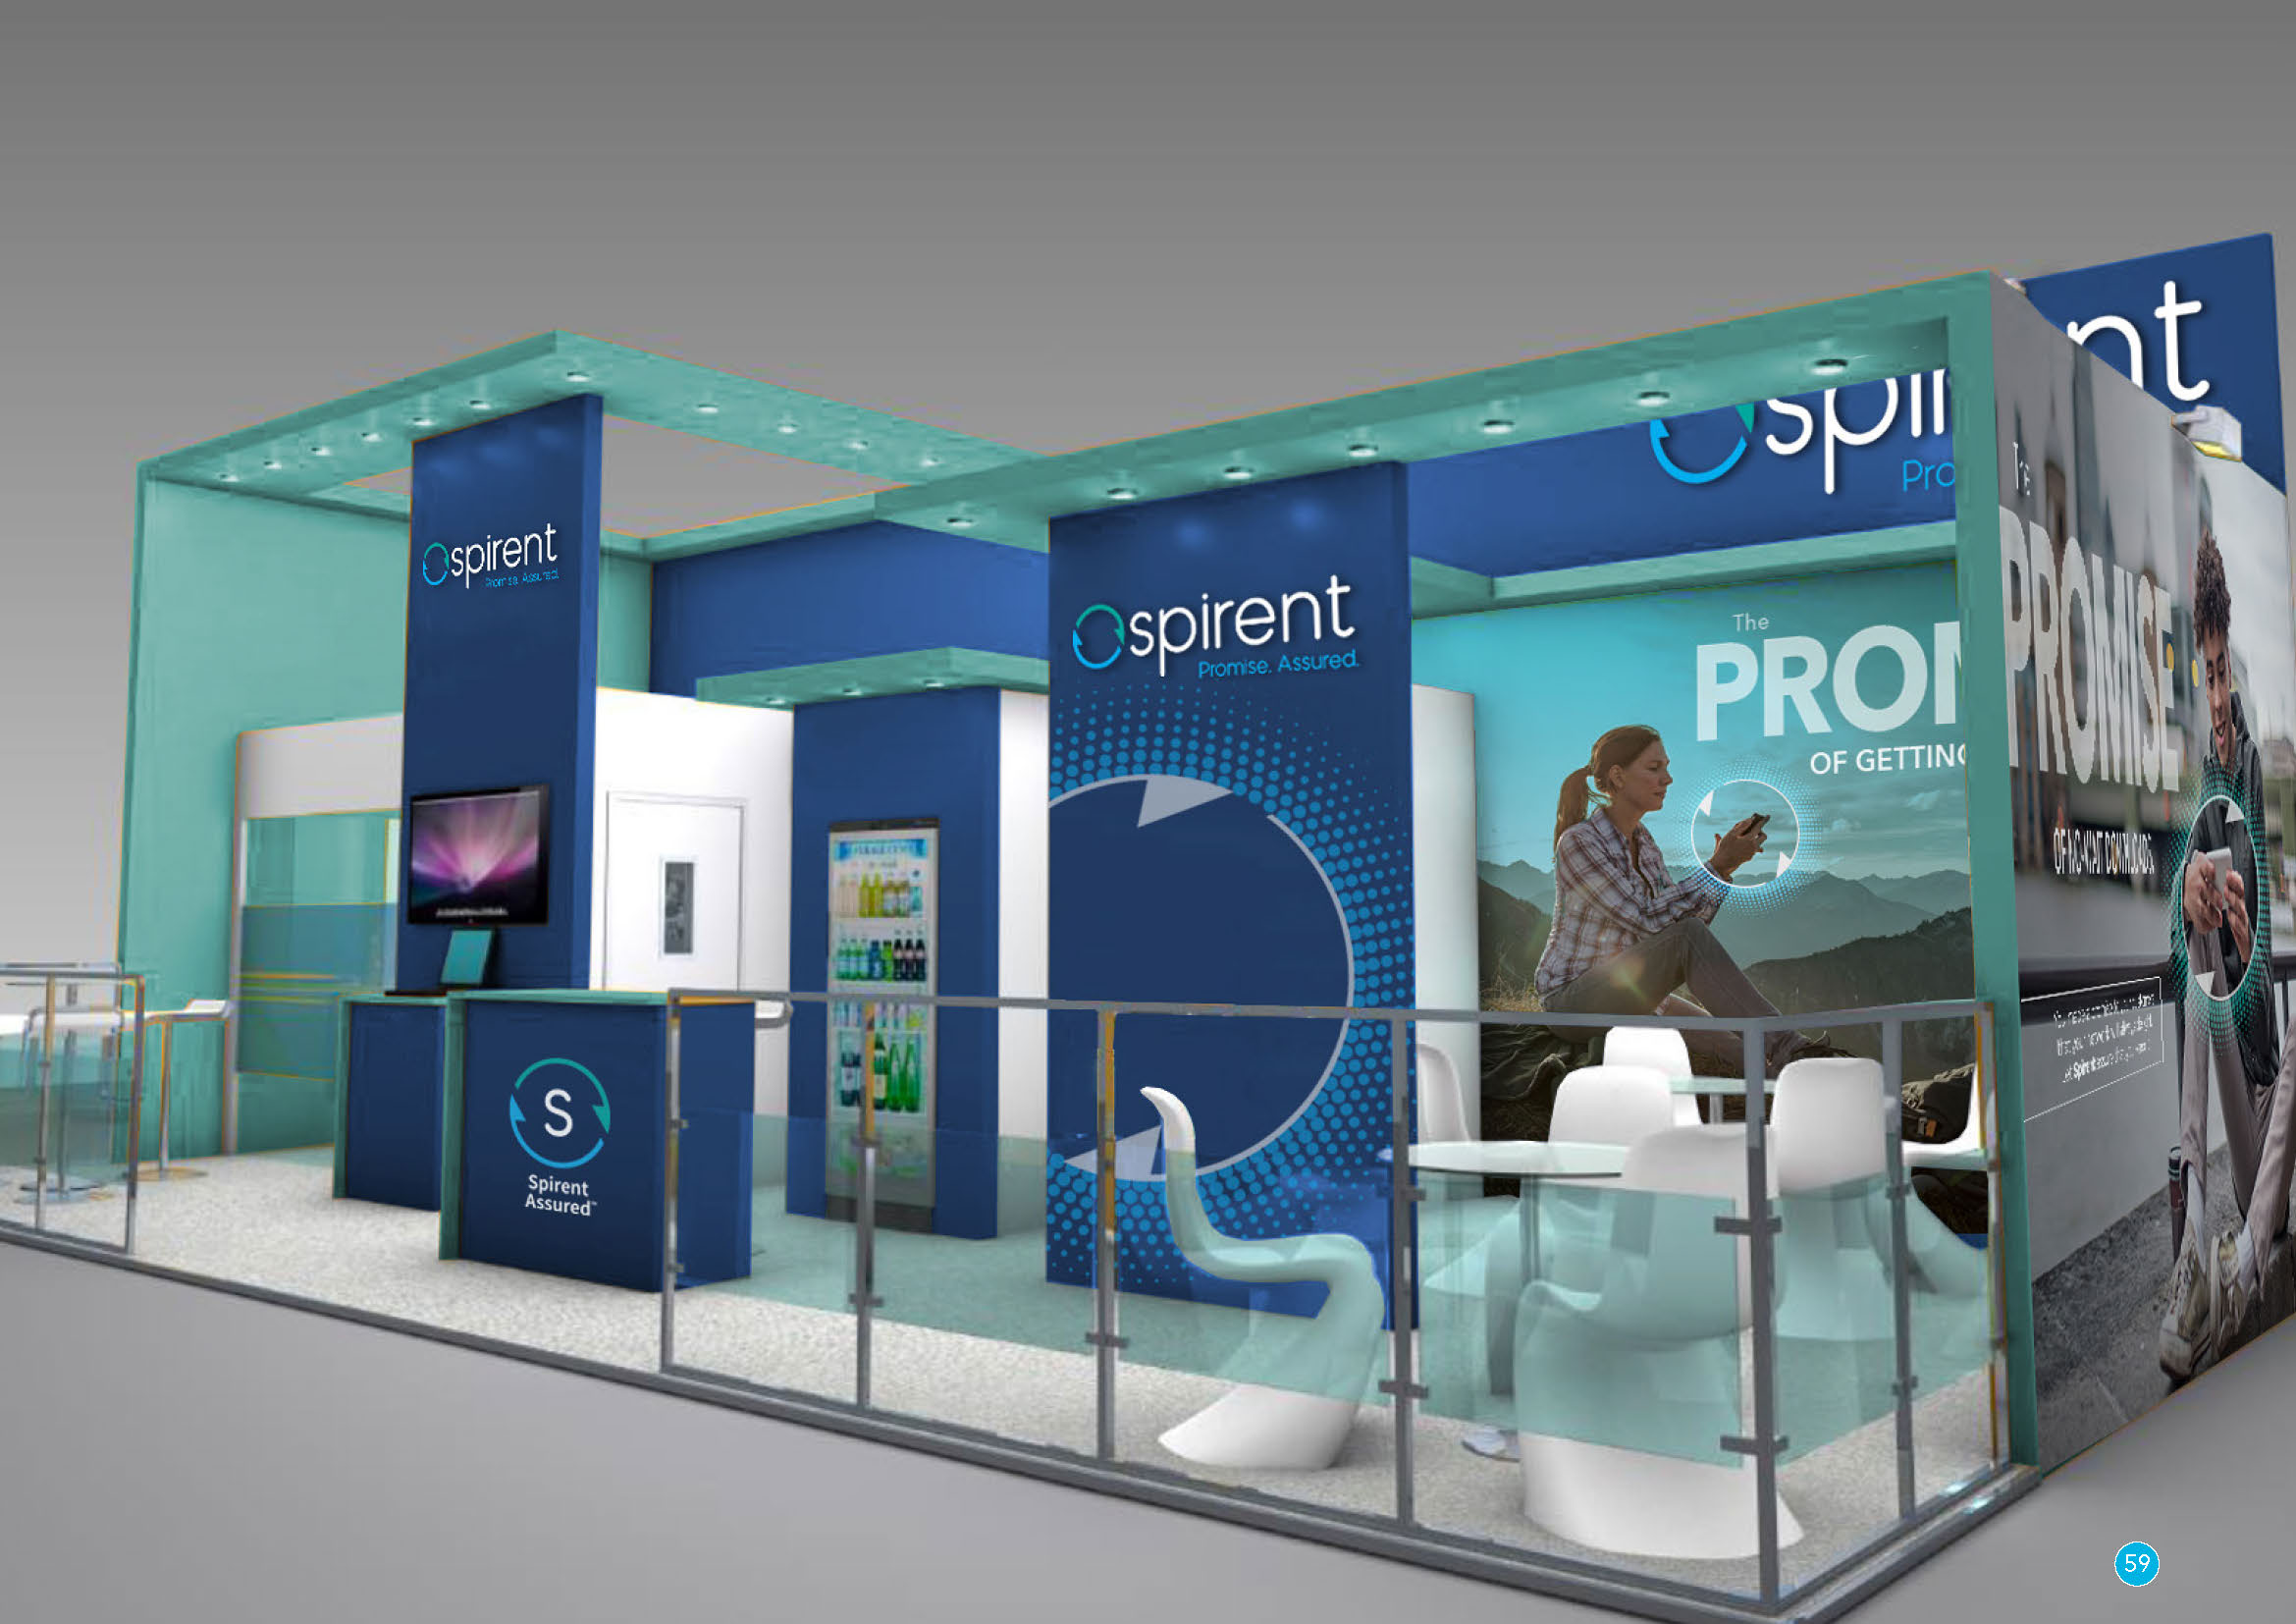 Spirent-Brand-Guidelines-7-18-18_Page_59.jpg